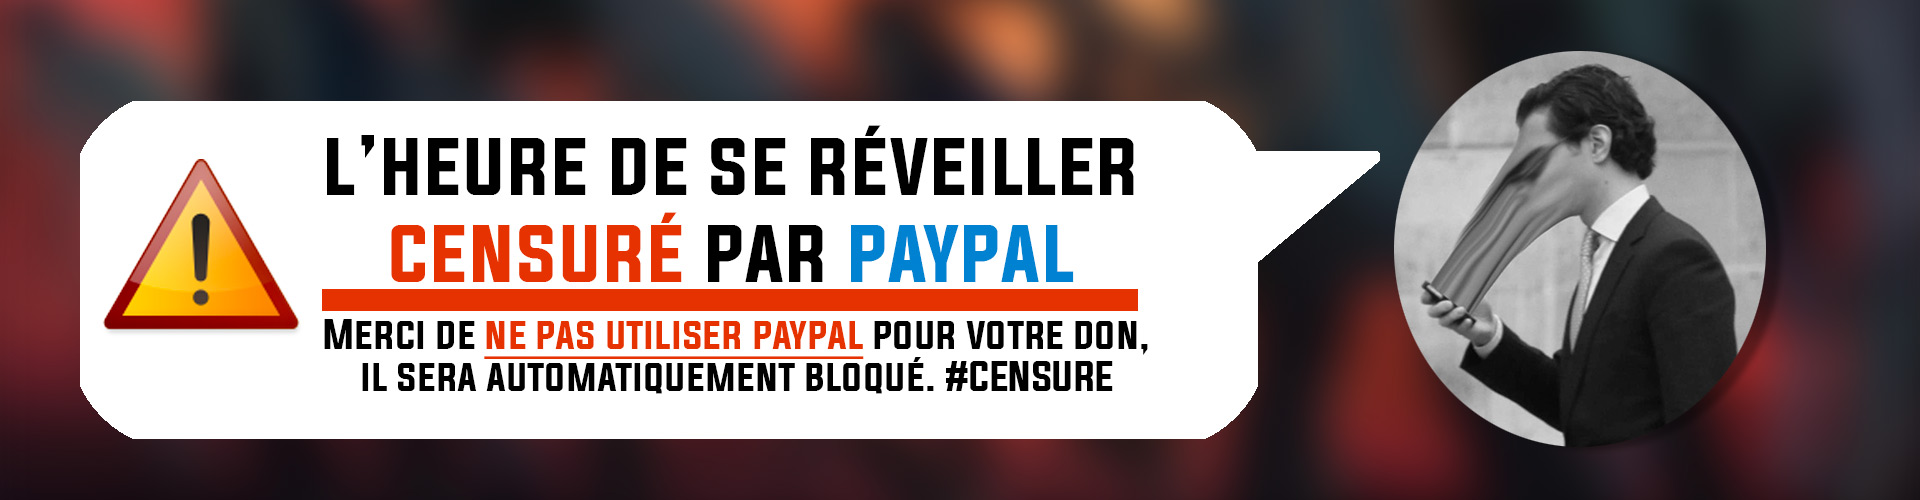 PAYPAL CENSURE